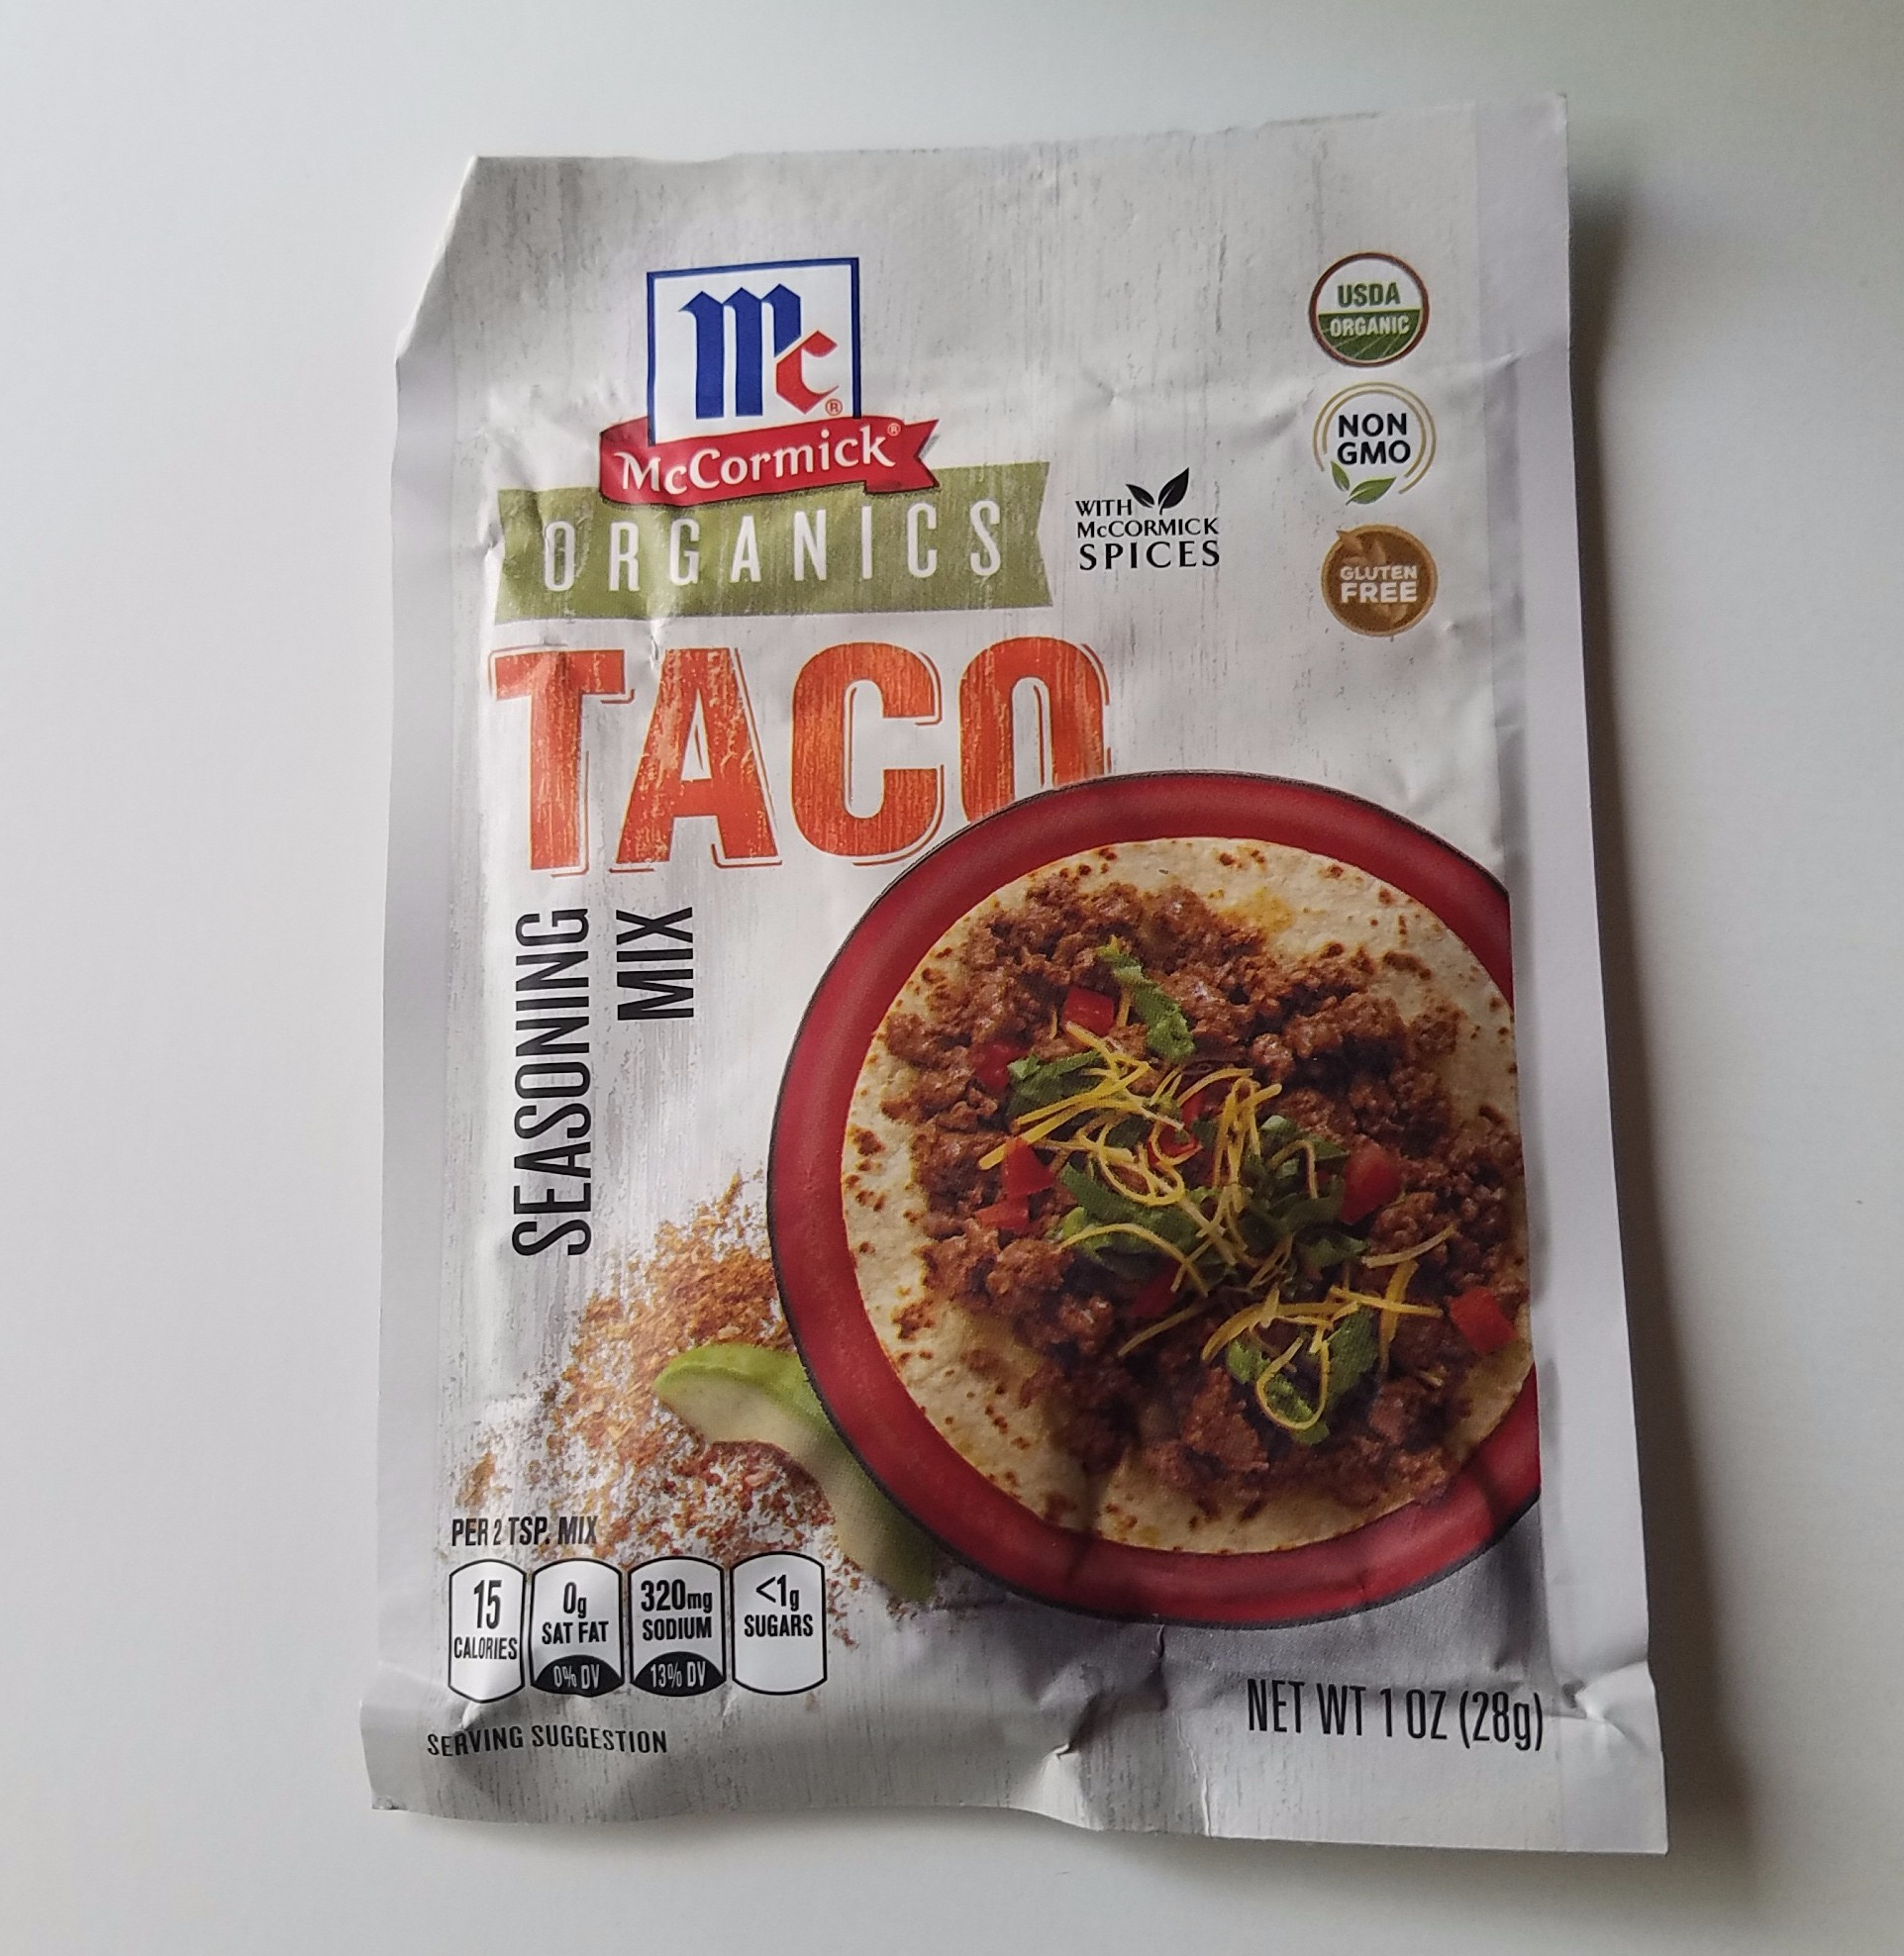 McCormick Organics Taco Seasoning Mix